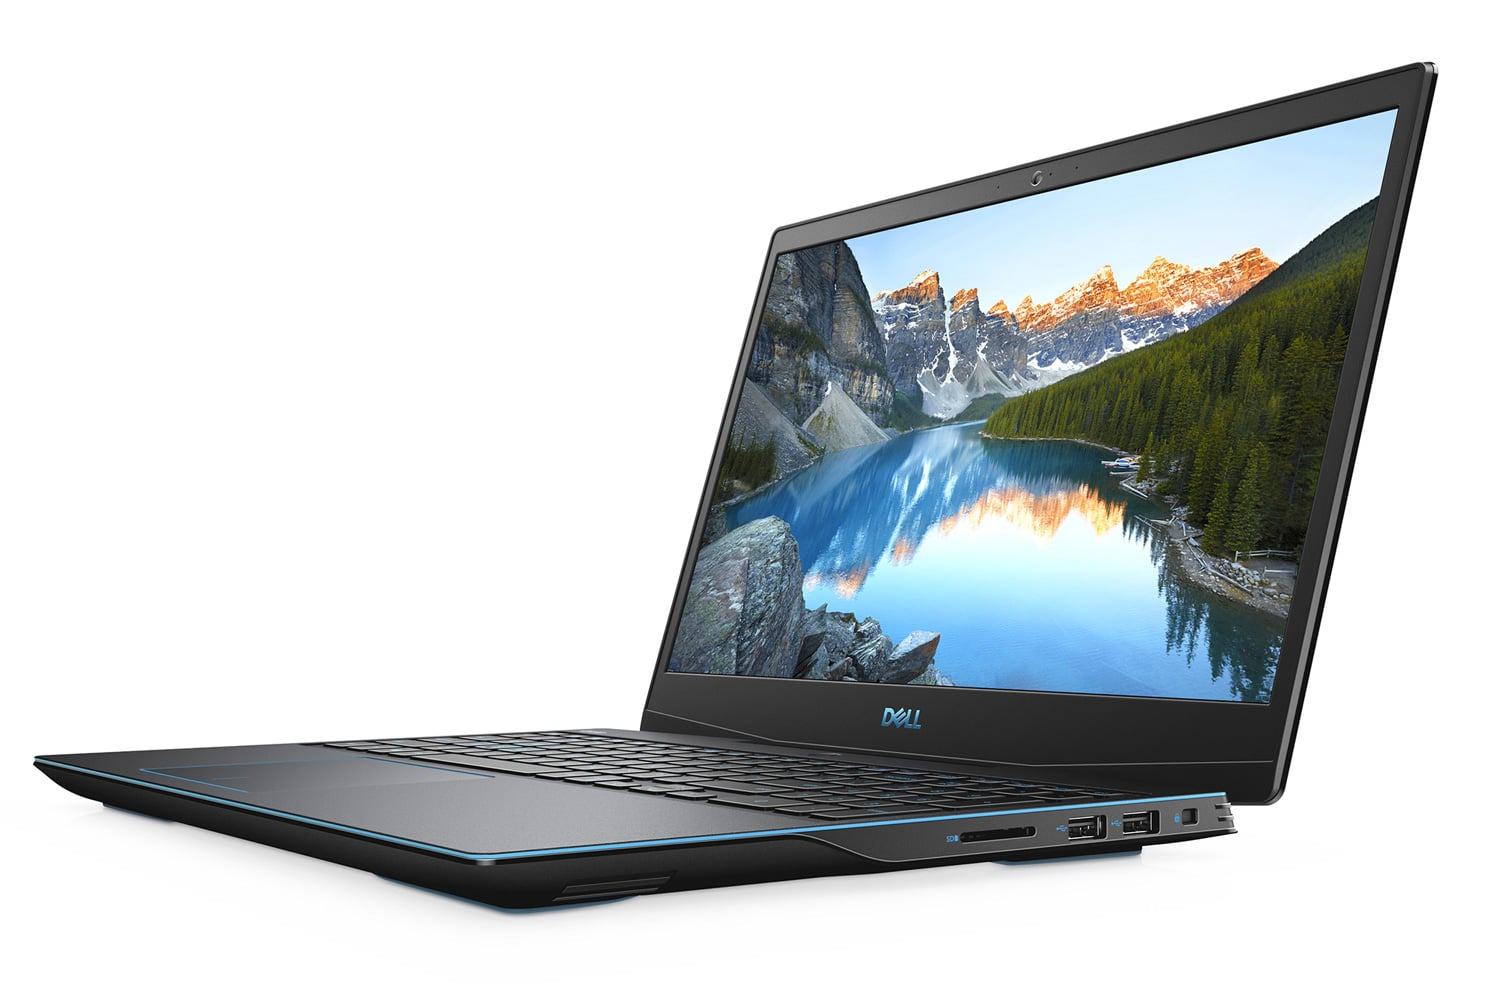 "<span class=""soldes-best"">Soldes 899€</span> Dell Inspiron G3 3590, PC gamer 15 pouces polyvalent"